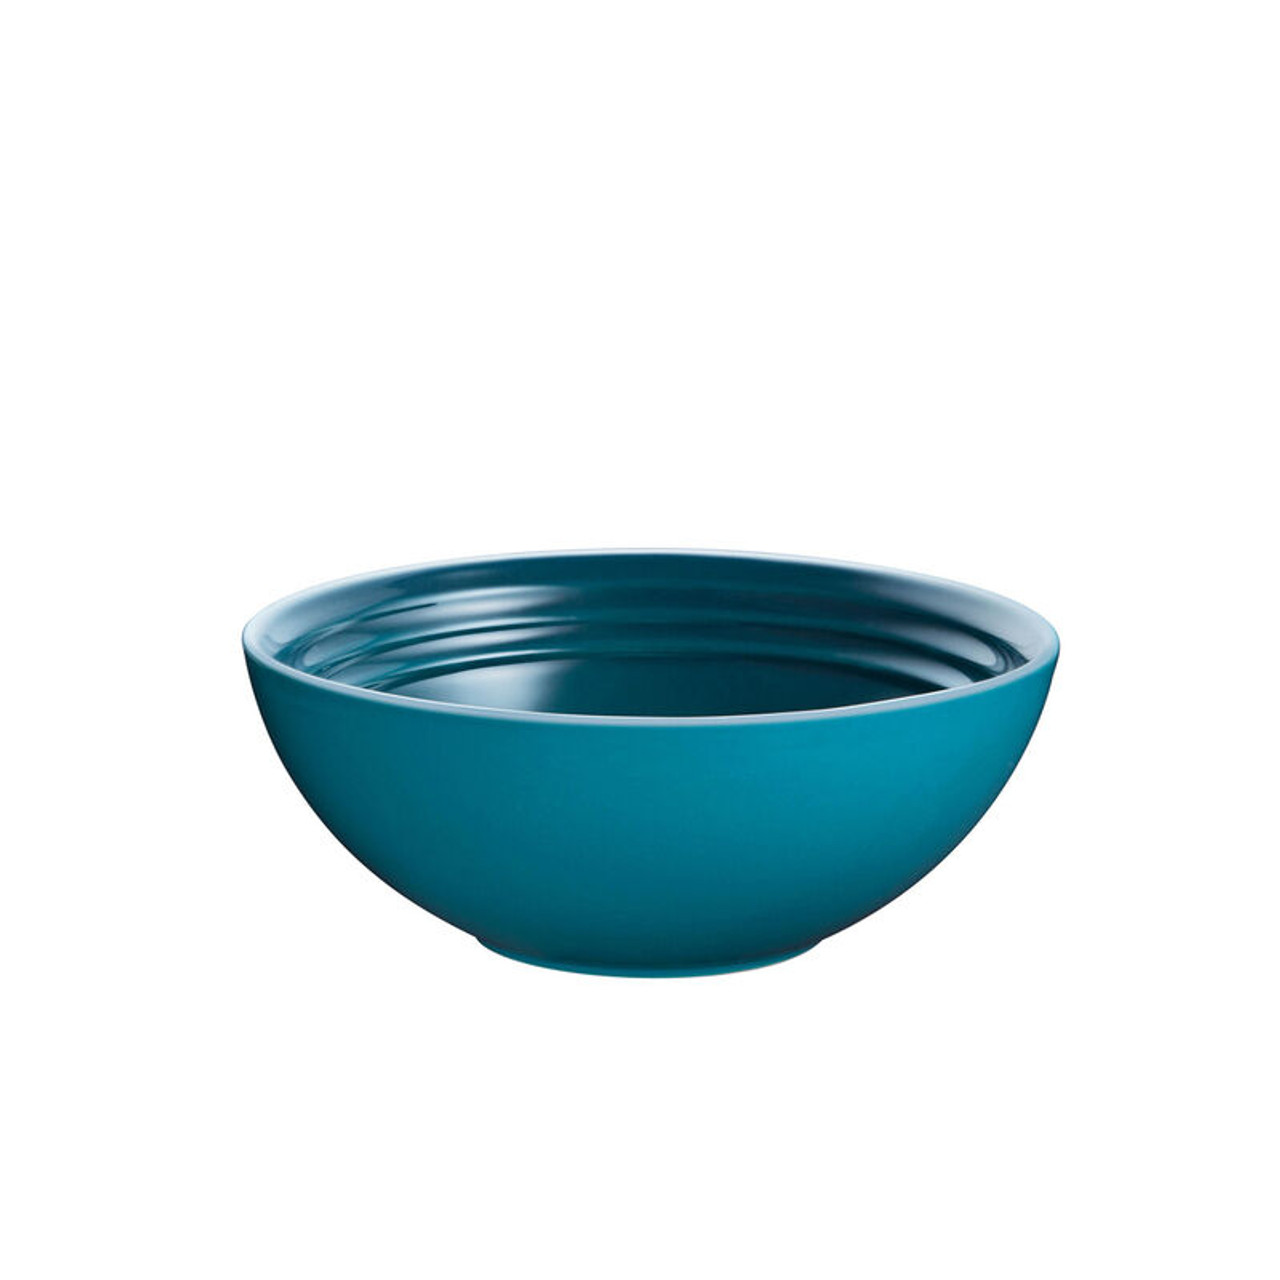 LE CREUSET CLASSIC CEREAL BOWL SET OF 4